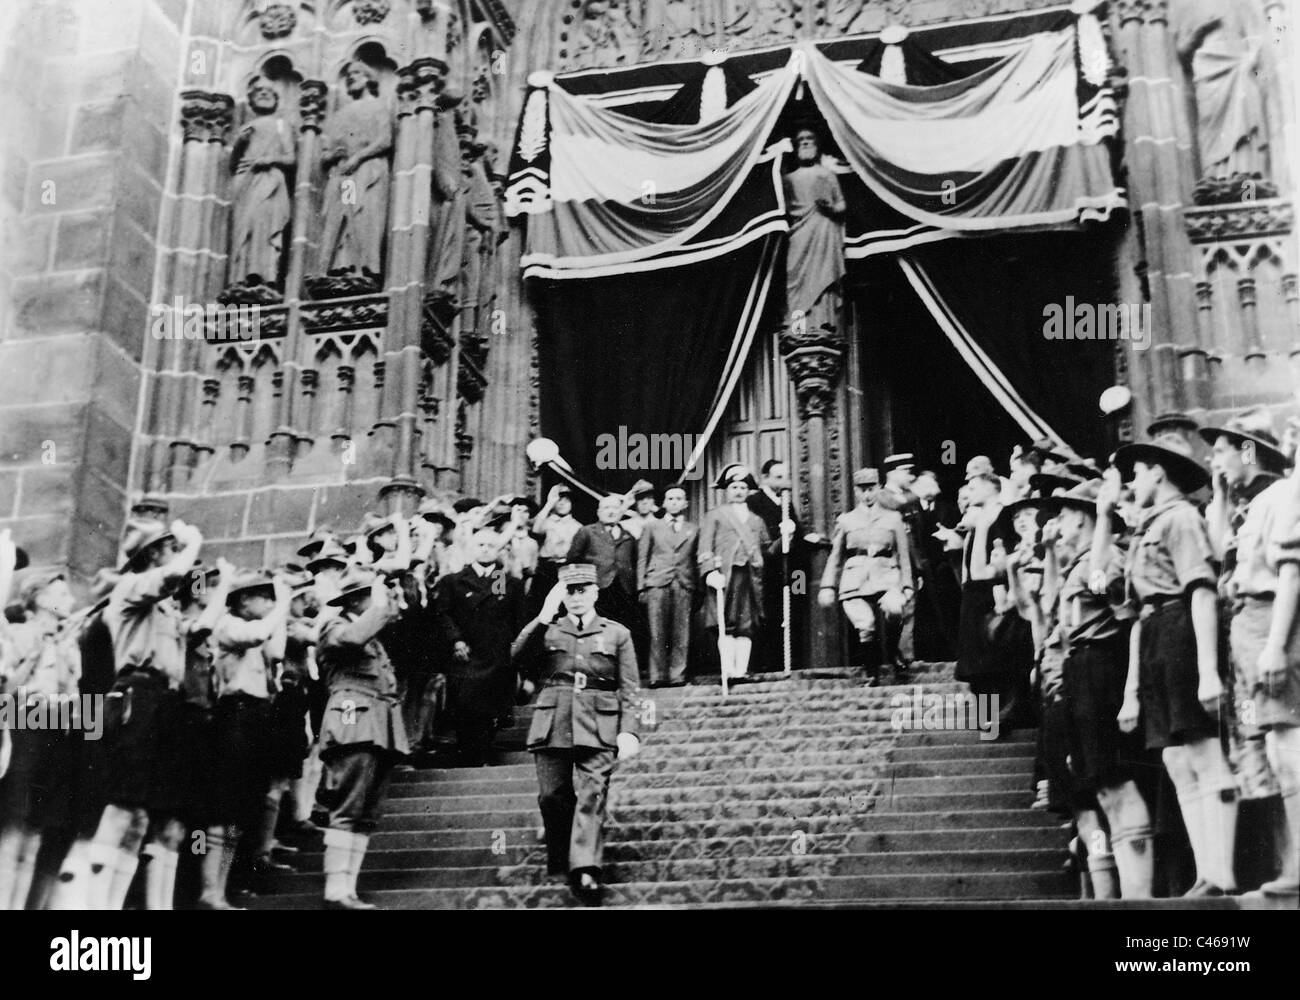 Henri Philippe Petain during the celebration of the Armistice, 1940 - Stock Image